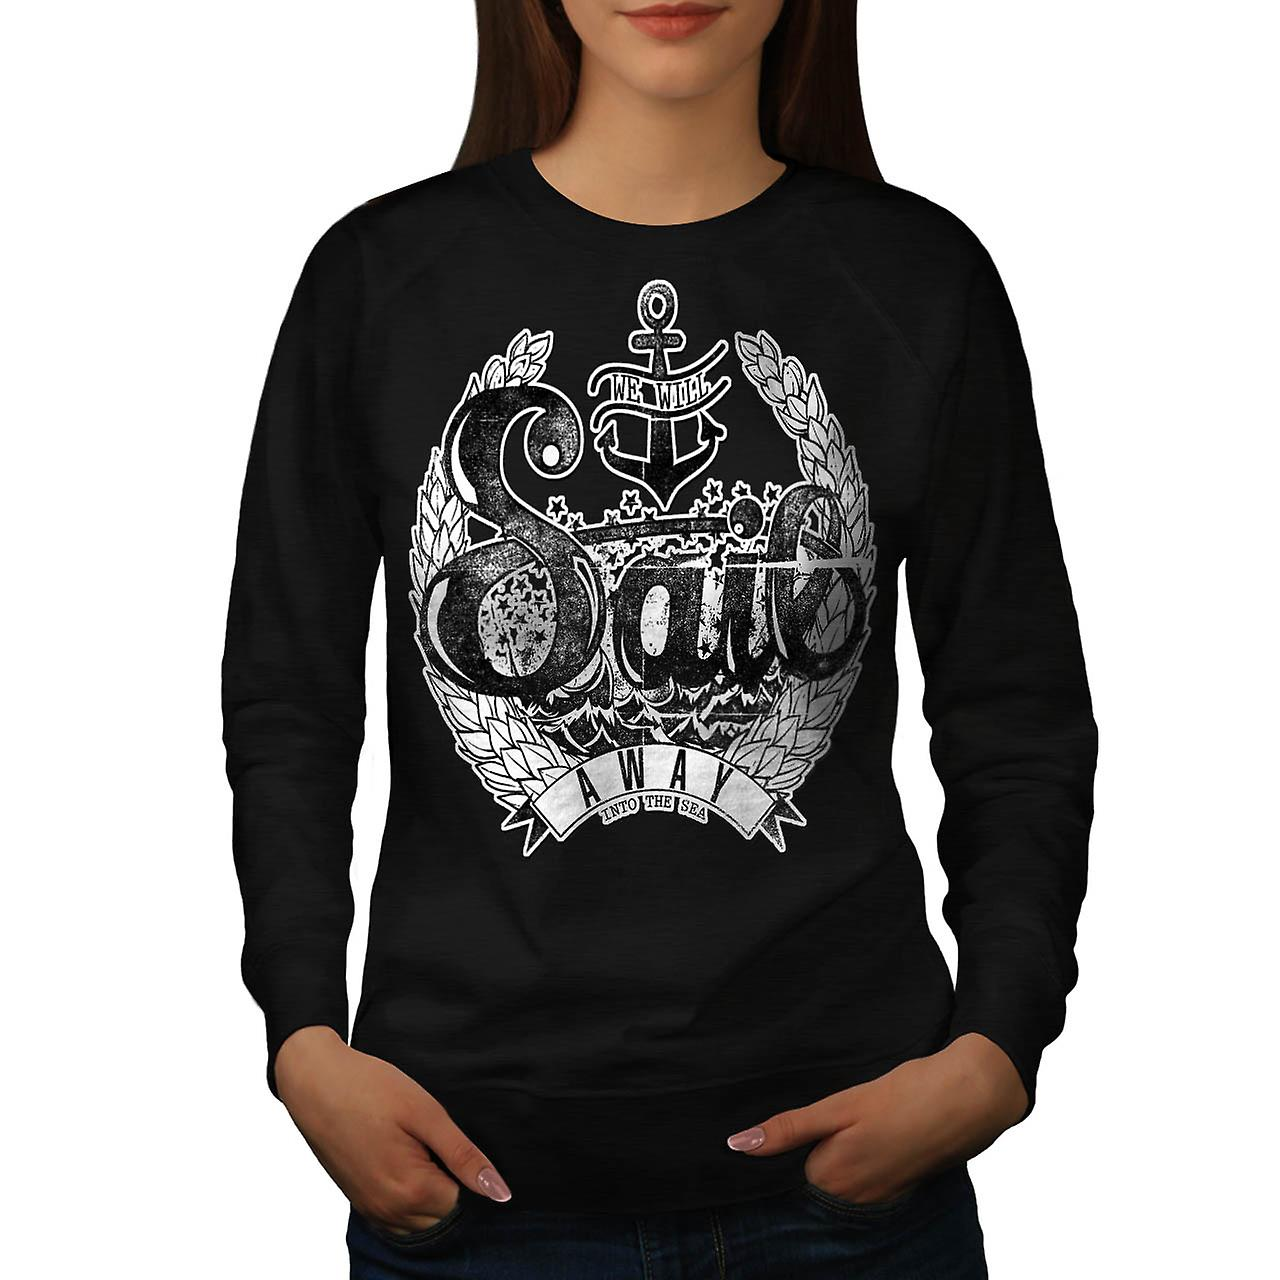 Sail Away Into Sea Boat Cruise Women Black Sweatshirt | Wellcoda